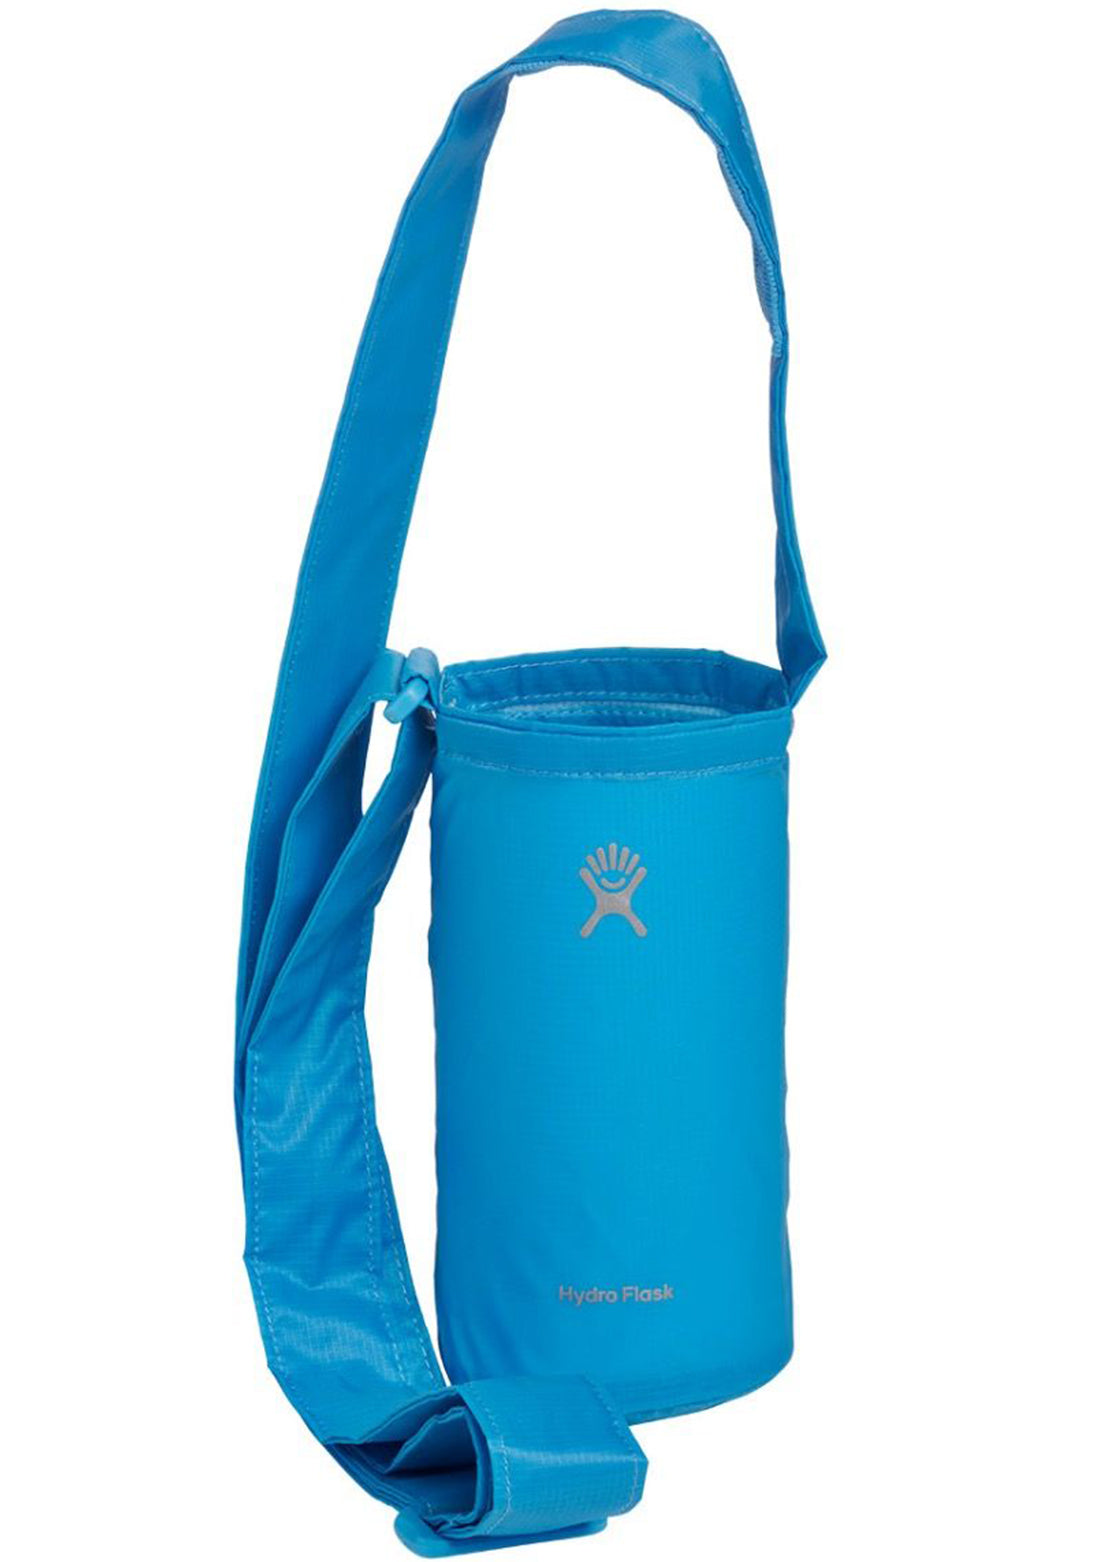 Hydro Flask Medium Packable Bottle Sling Bluebell